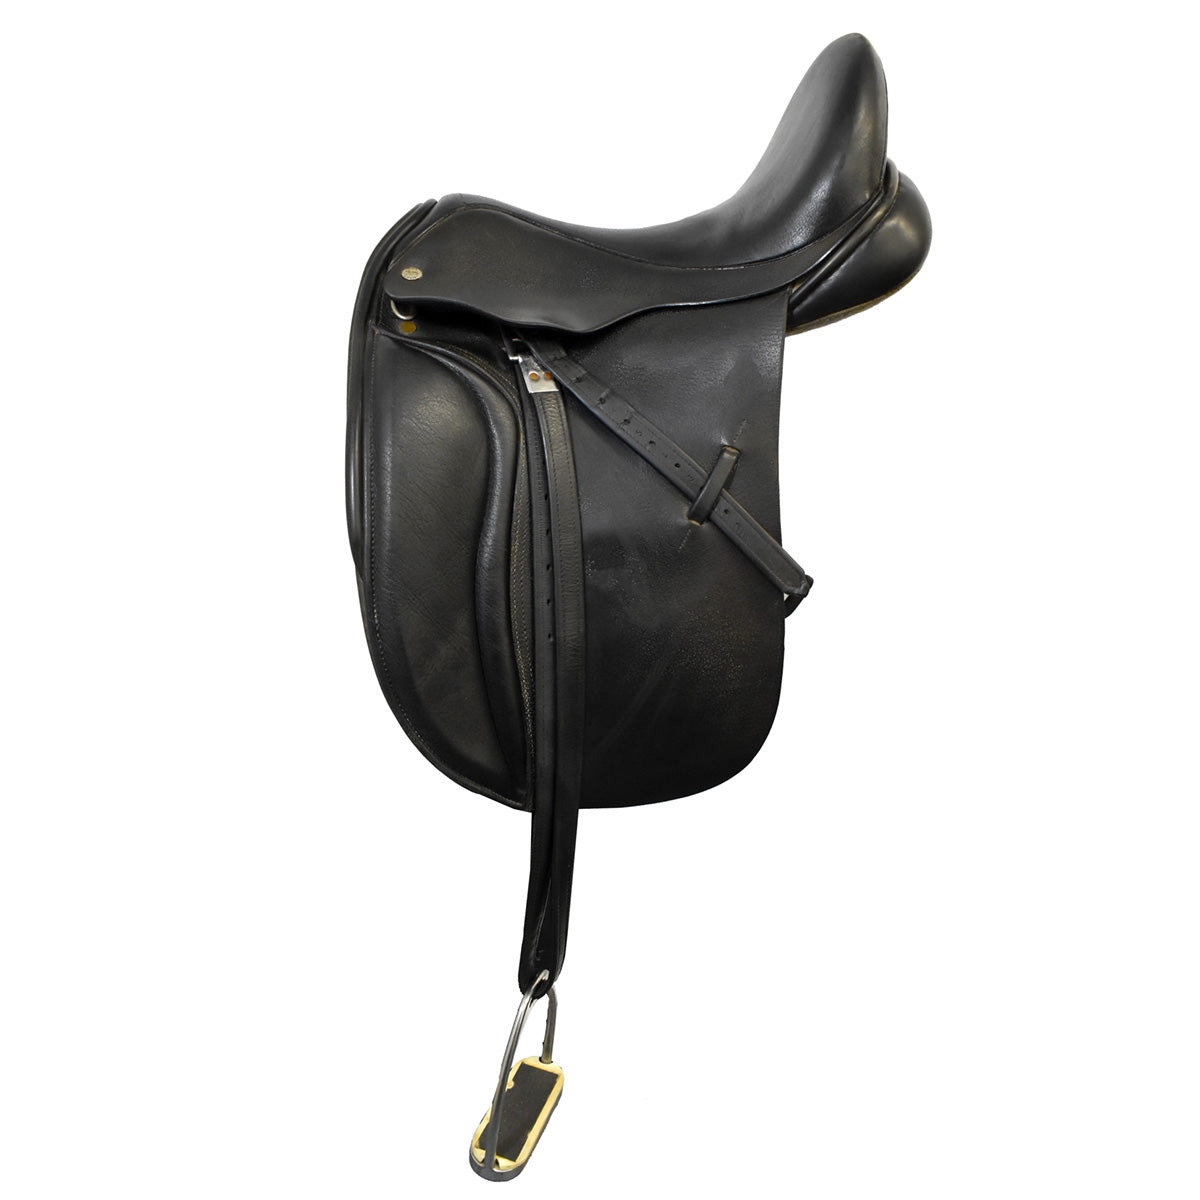 "Black Country Eloquence 16.5"" Used Dressage Saddle"